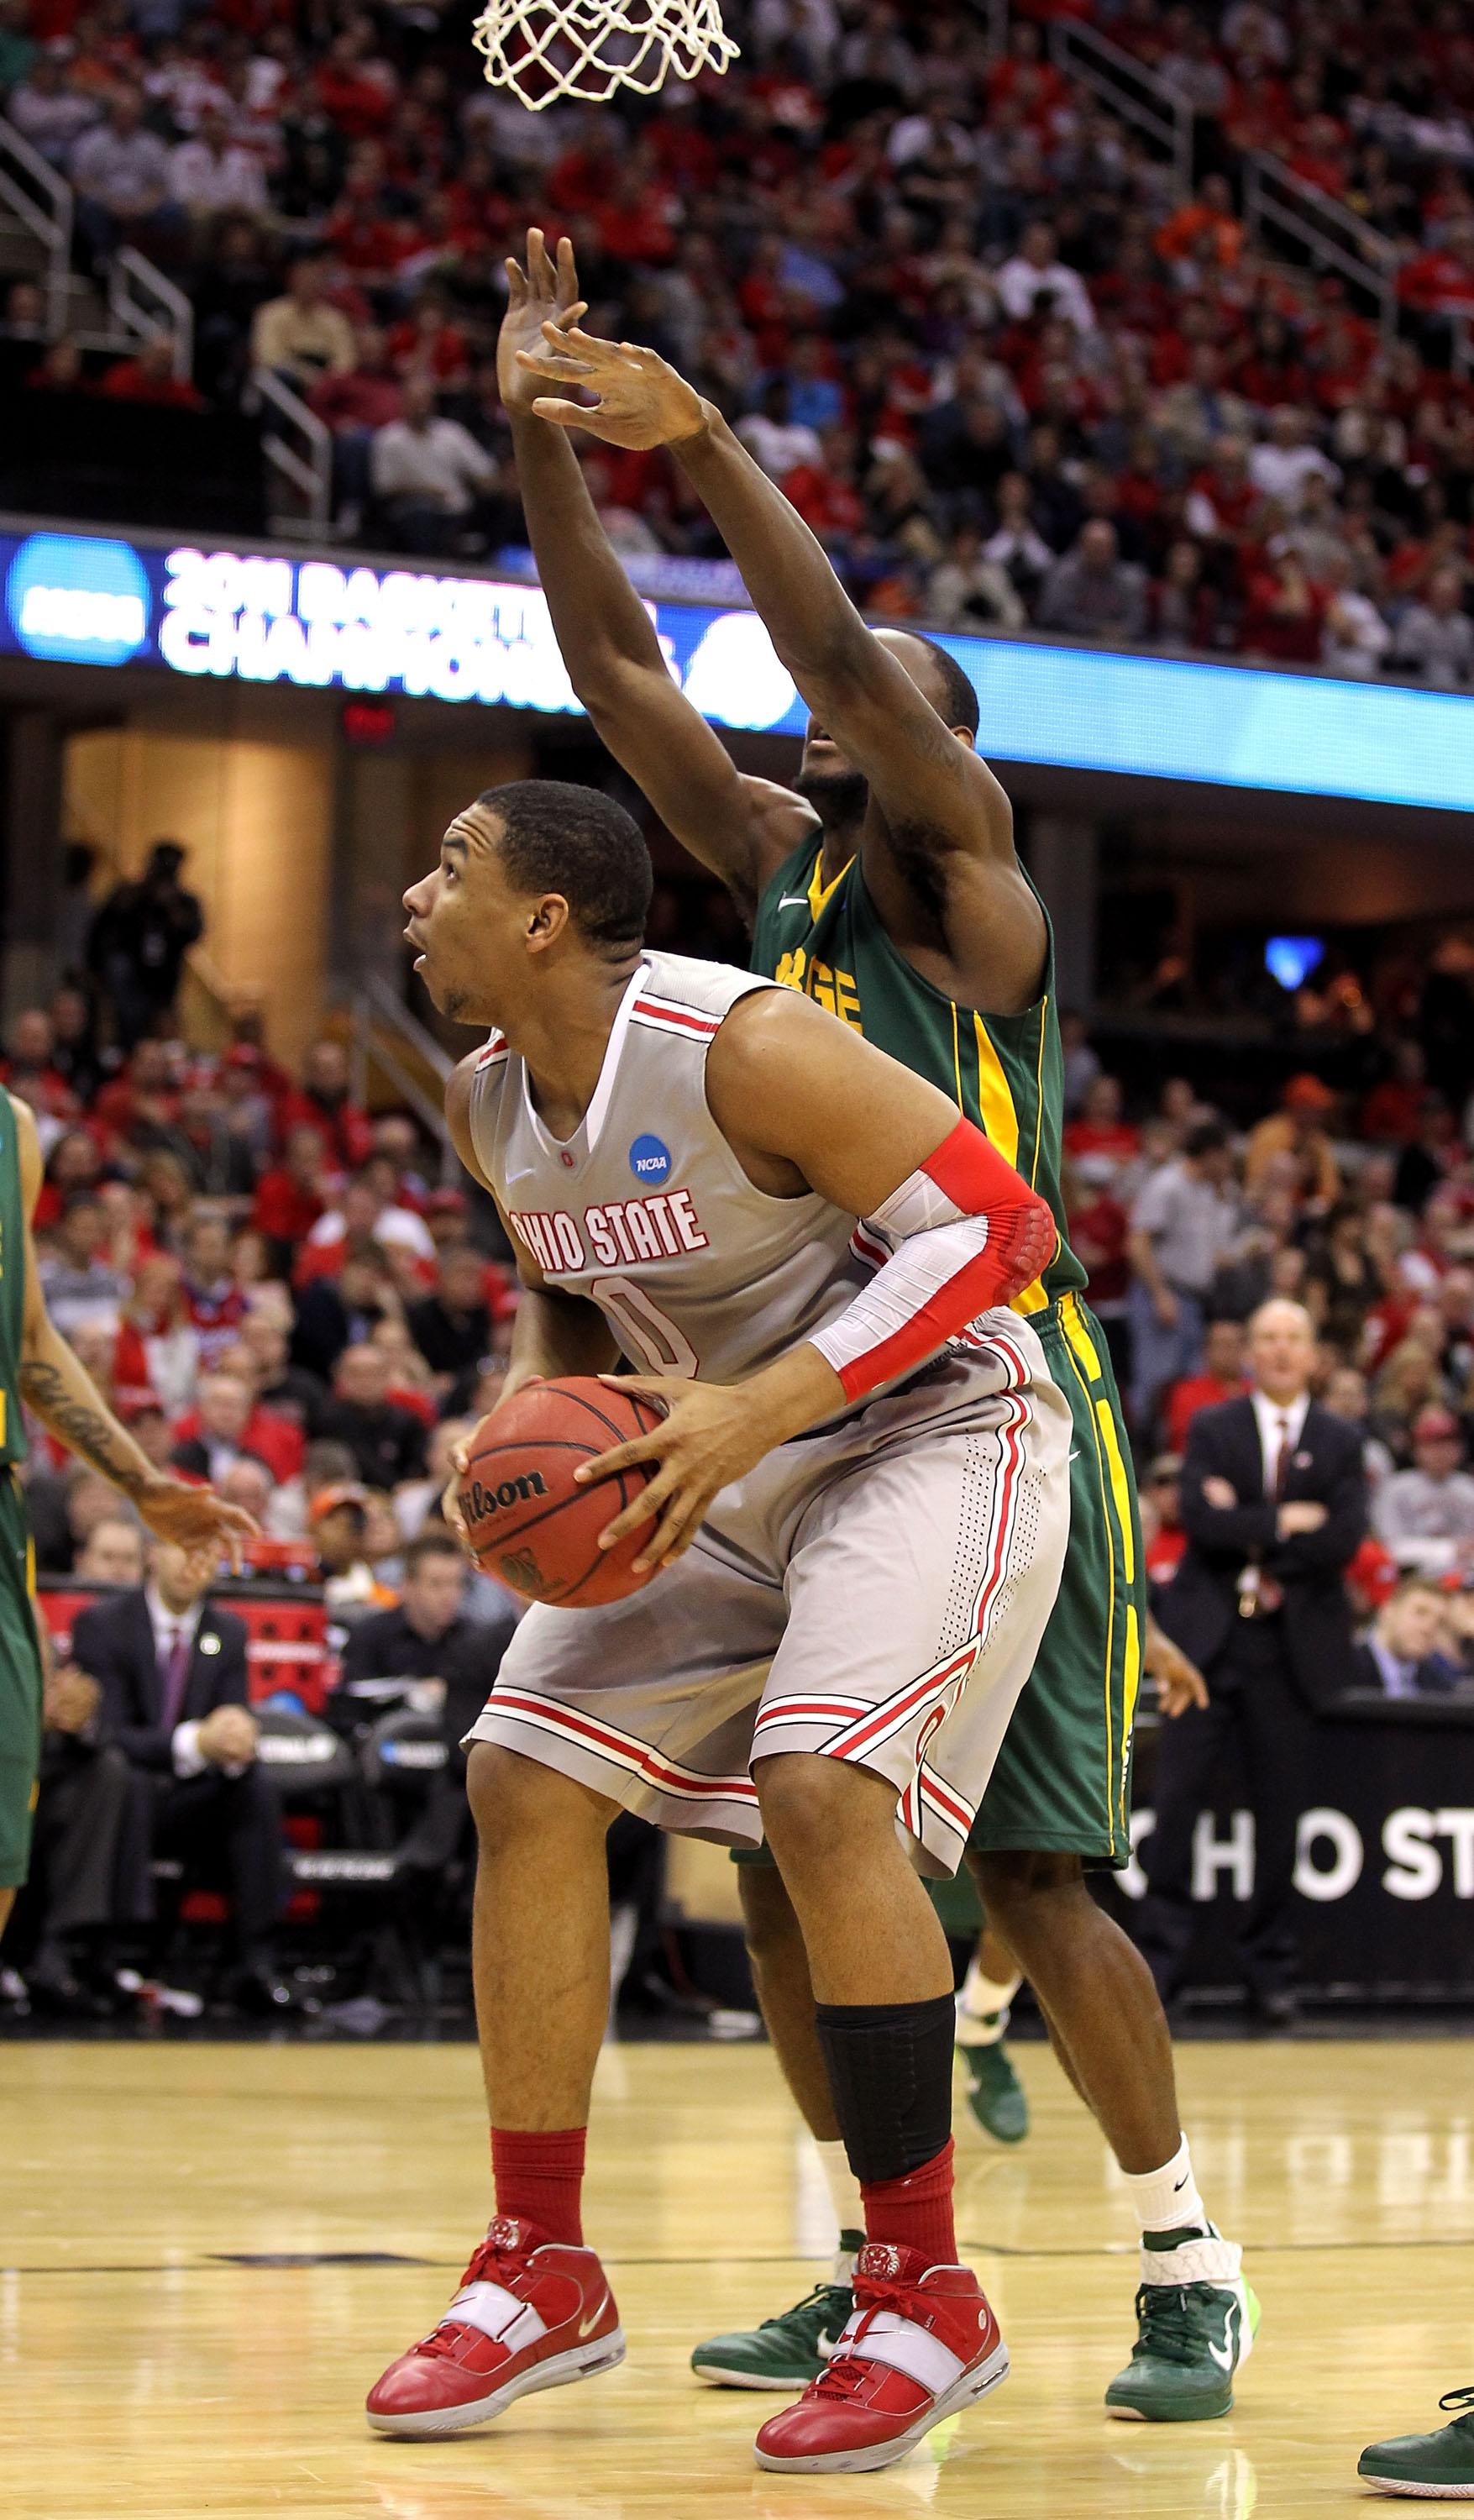 CLEVELAND, OH - MARCH 20: Jared Sullinger #0 of the Ohio State Buckeyes handles the ball against Mike Morrison #22 of the George Mason Patriots during the third of the 2011 NCAA men's basketball tournament at Quicken Loans Arena on March 20, 2011 in Cleve